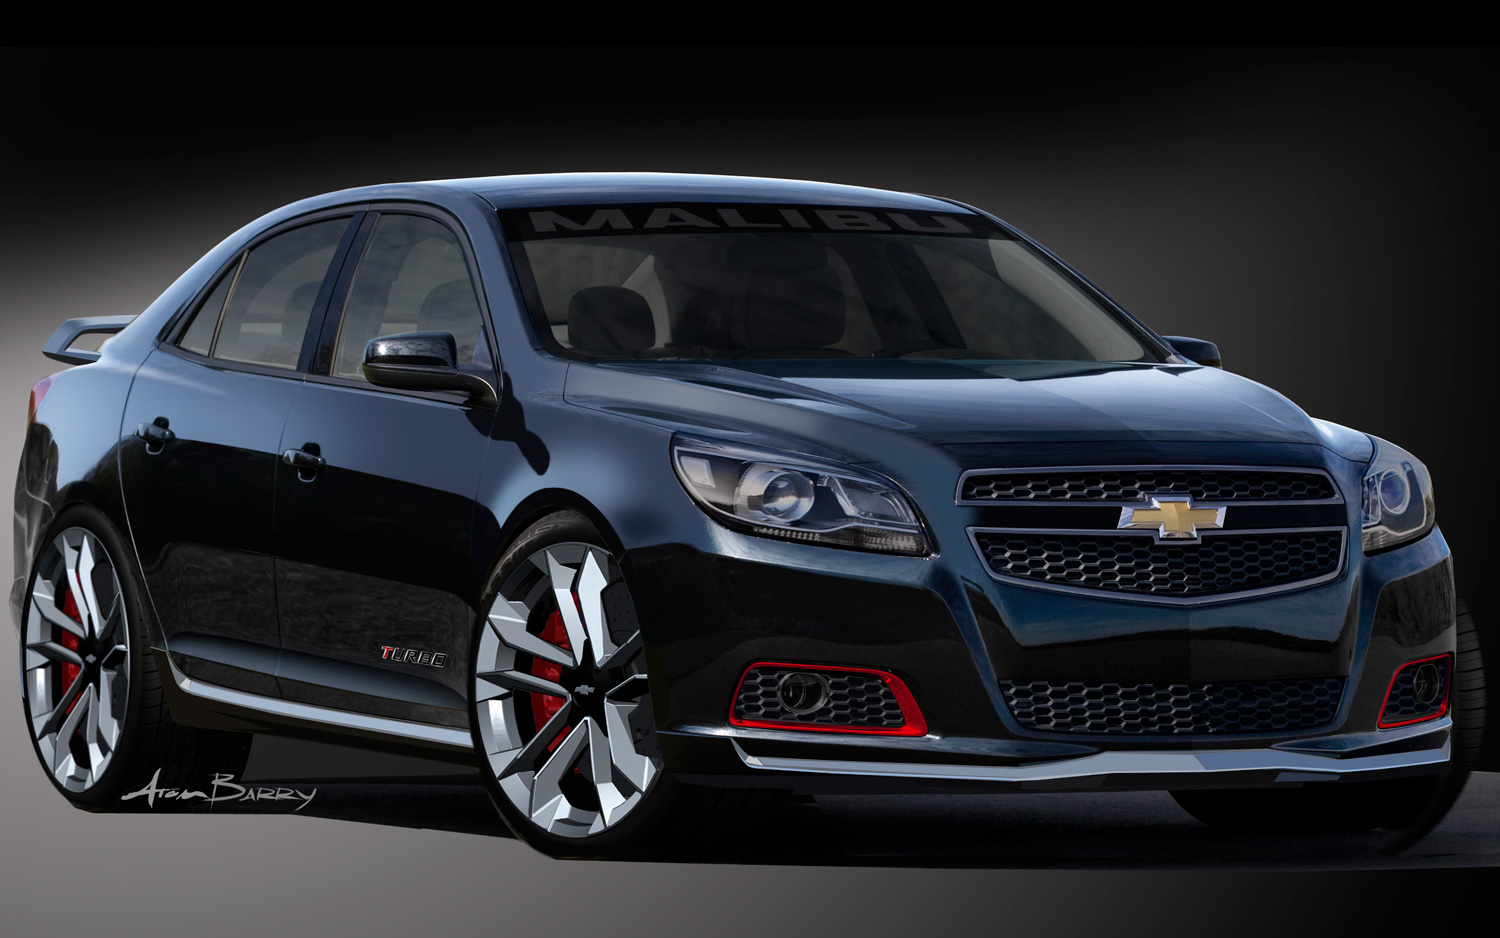 small resolution of sema sedans 2013 chevrolet malibu turbo and 2014 chevrolet impala ready for sema